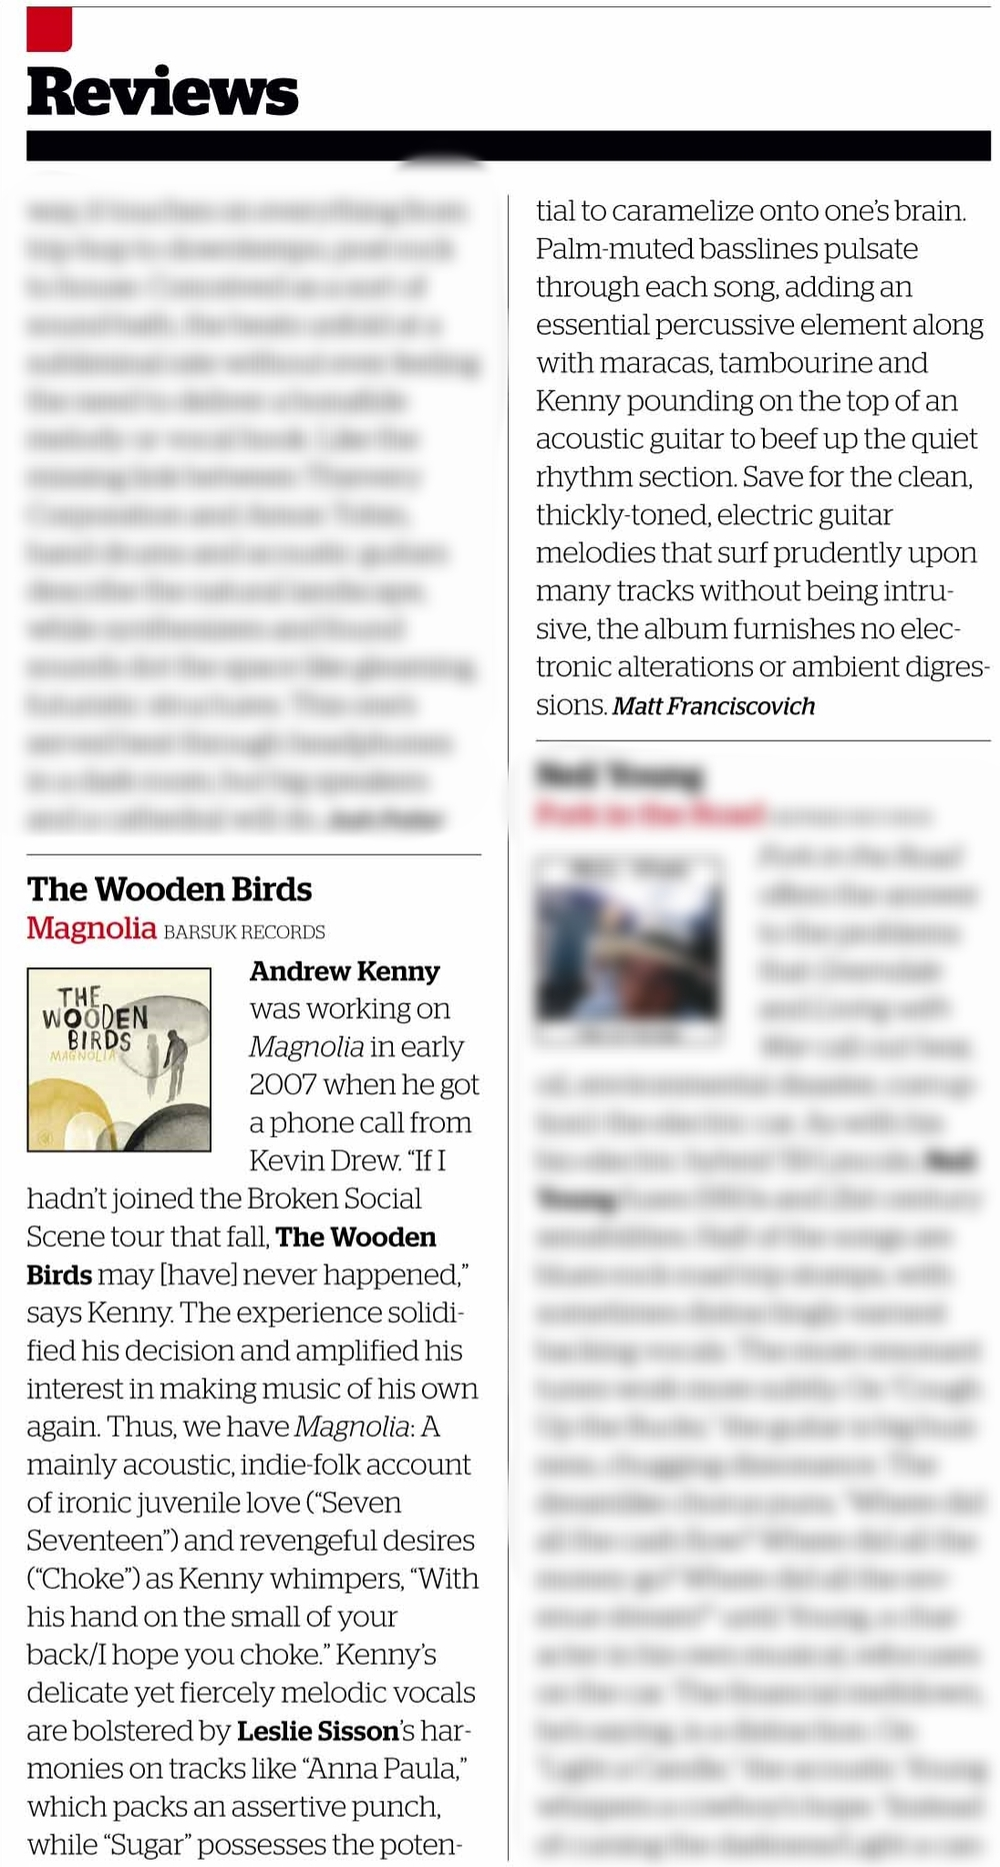 Album review: The Wooden Birds